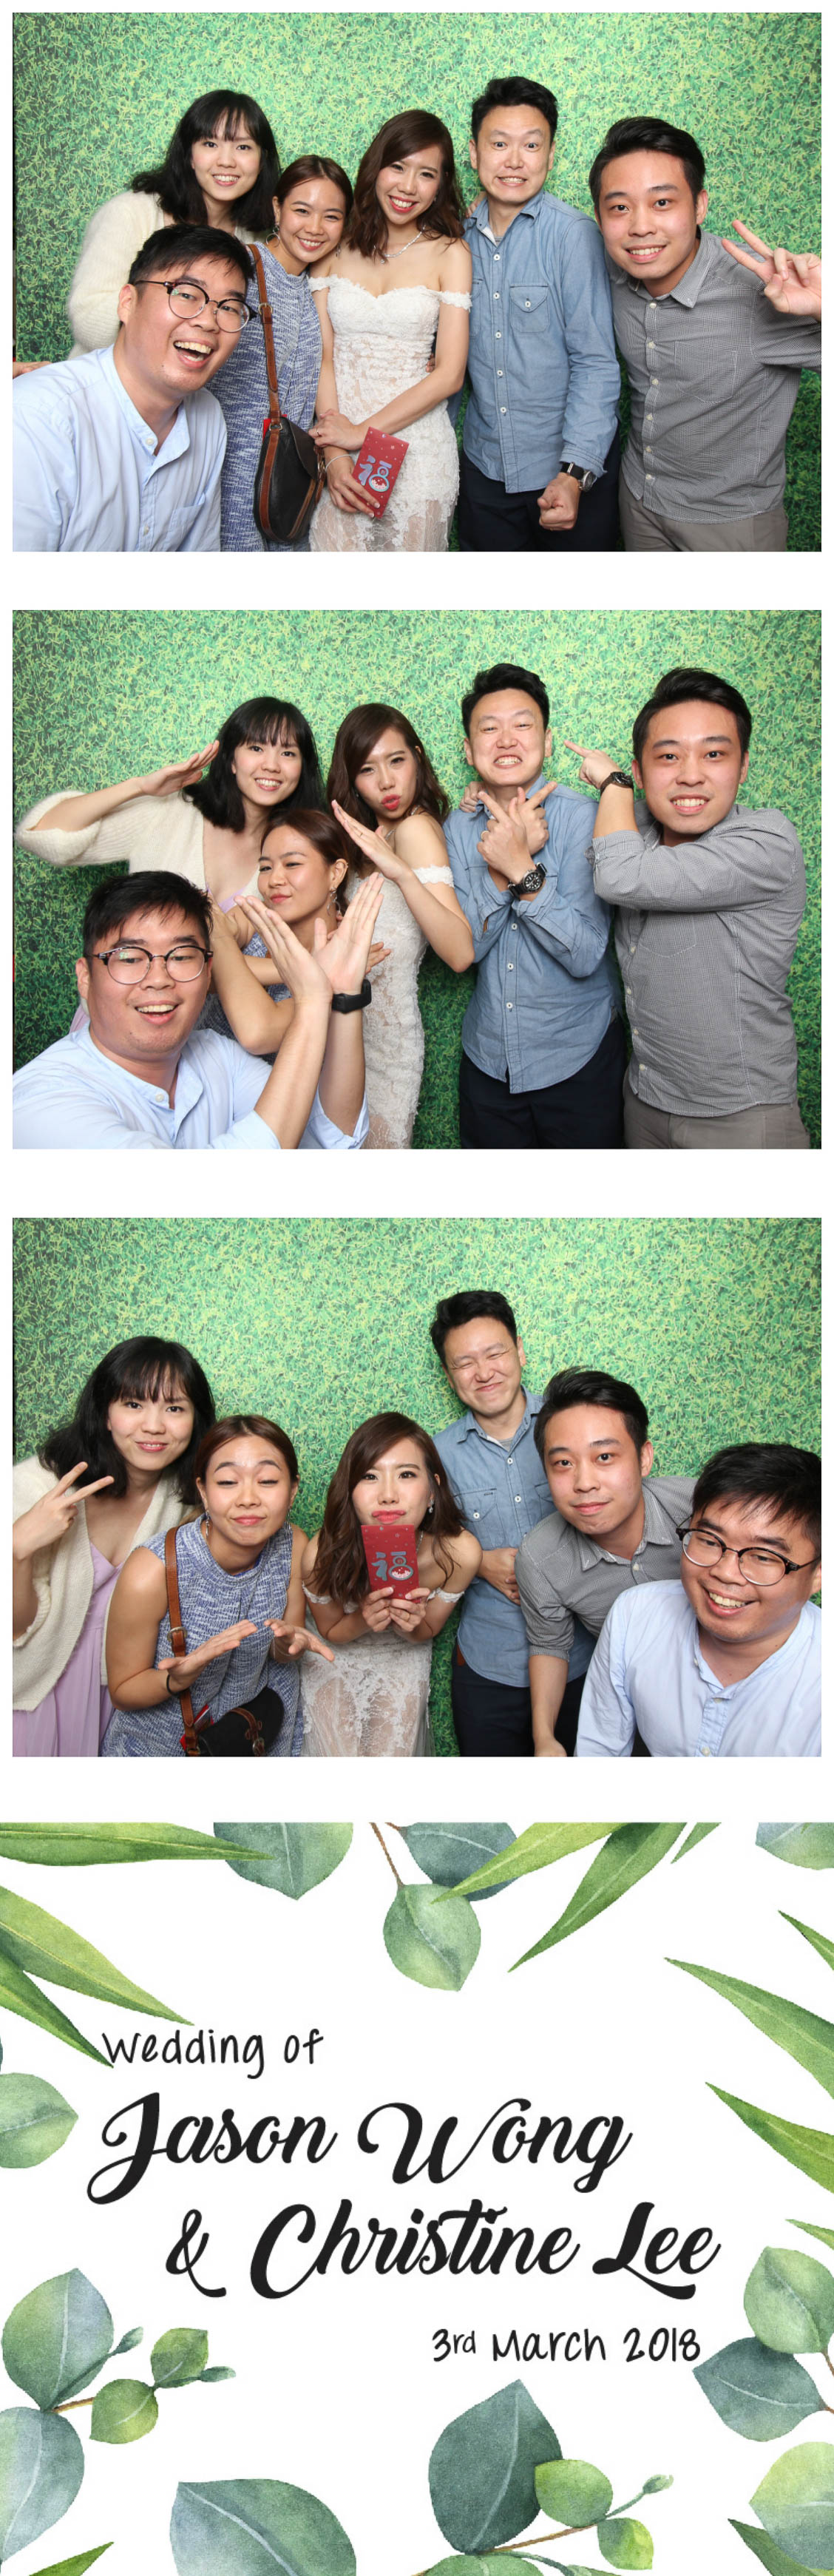 Photobooth 0302-55